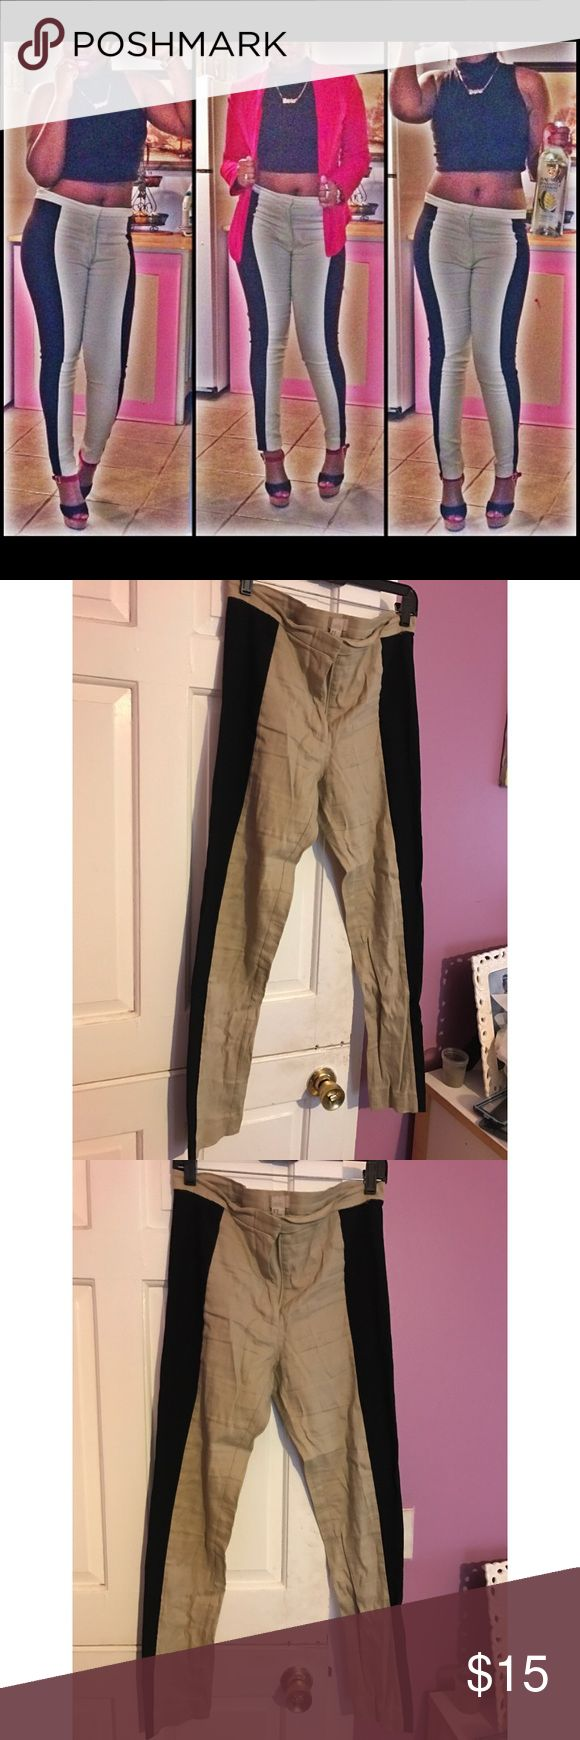 H&M Sexy Pants! ✨✨ This is kinda like a khaki/legging material. Form fitting and sexy, you can dress it up in any kind of way! Only worn twice. Just been taking up space. Size 10. H&M Pants Skinny